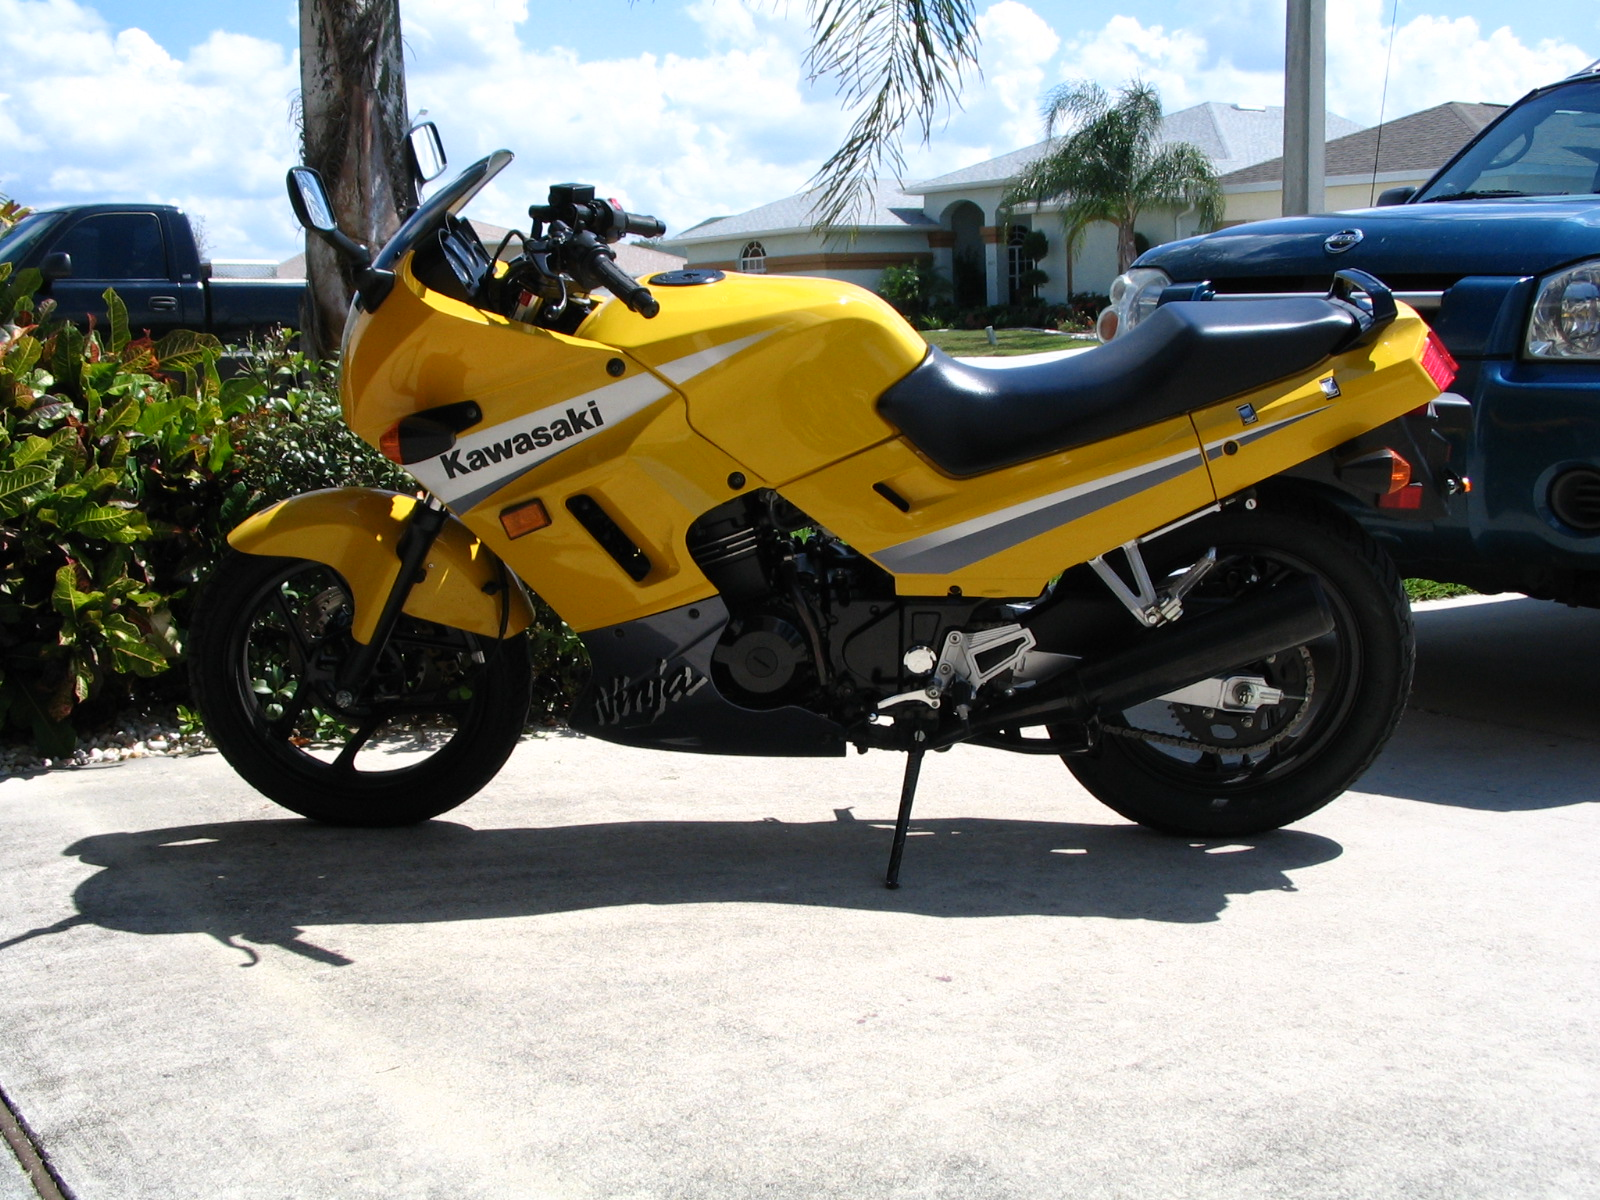 Bikes For Sale In Tampa Fl. Attached Thumbnails